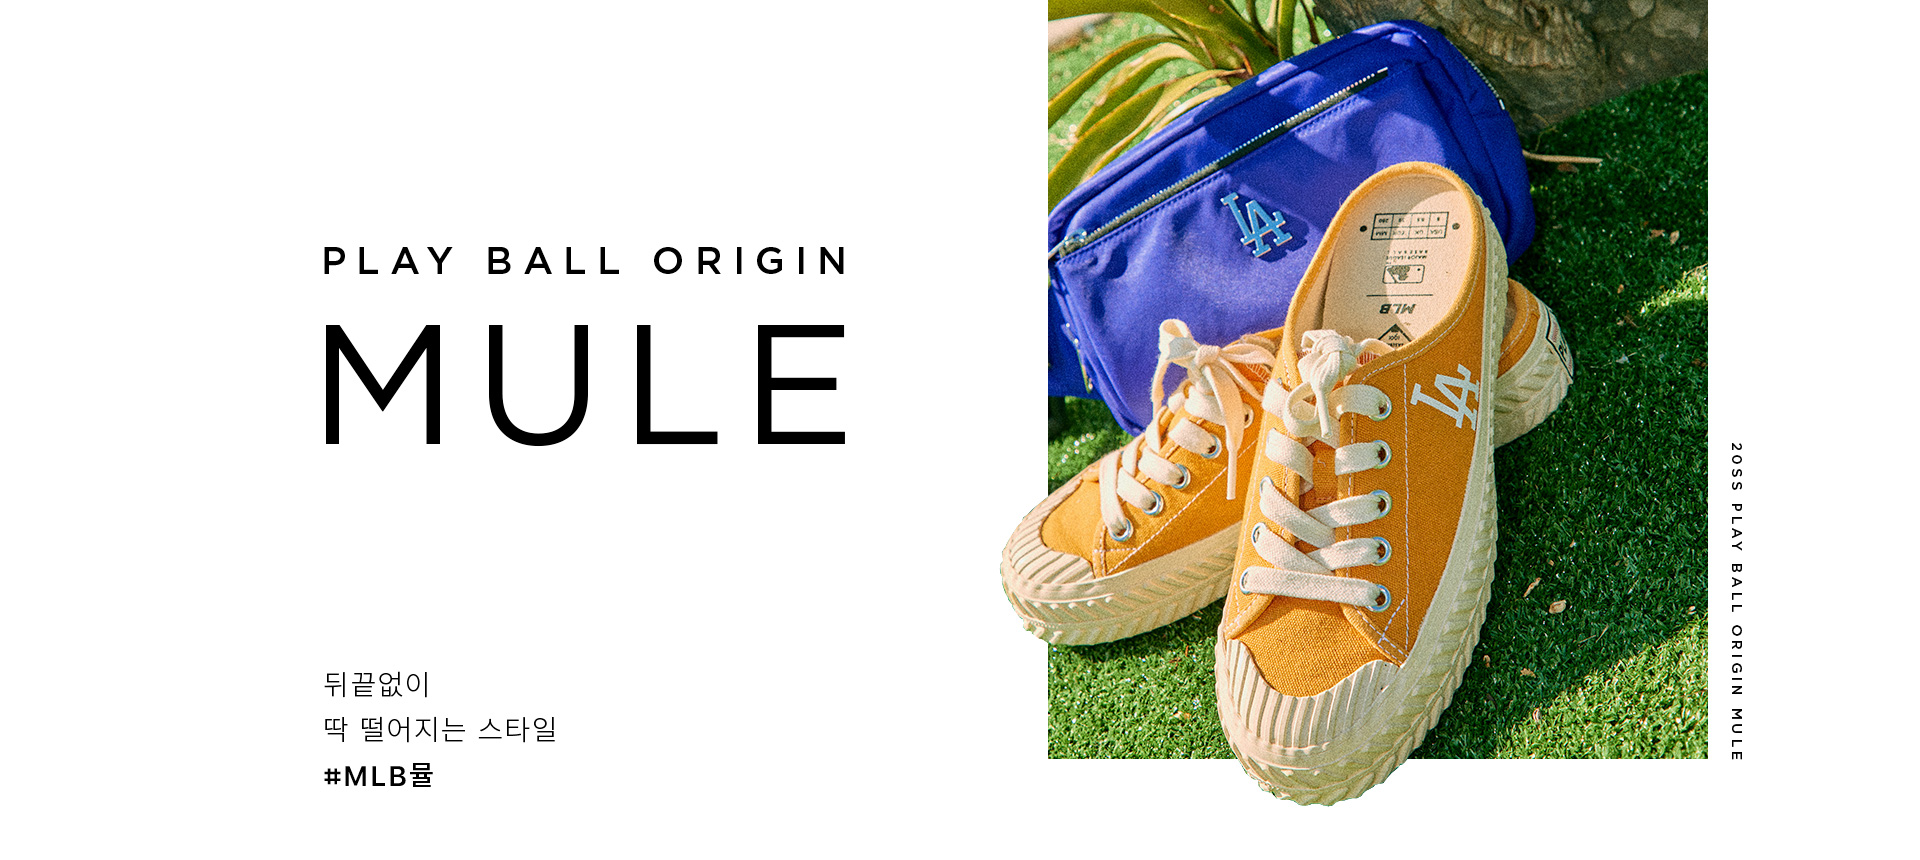 play ball origin mule